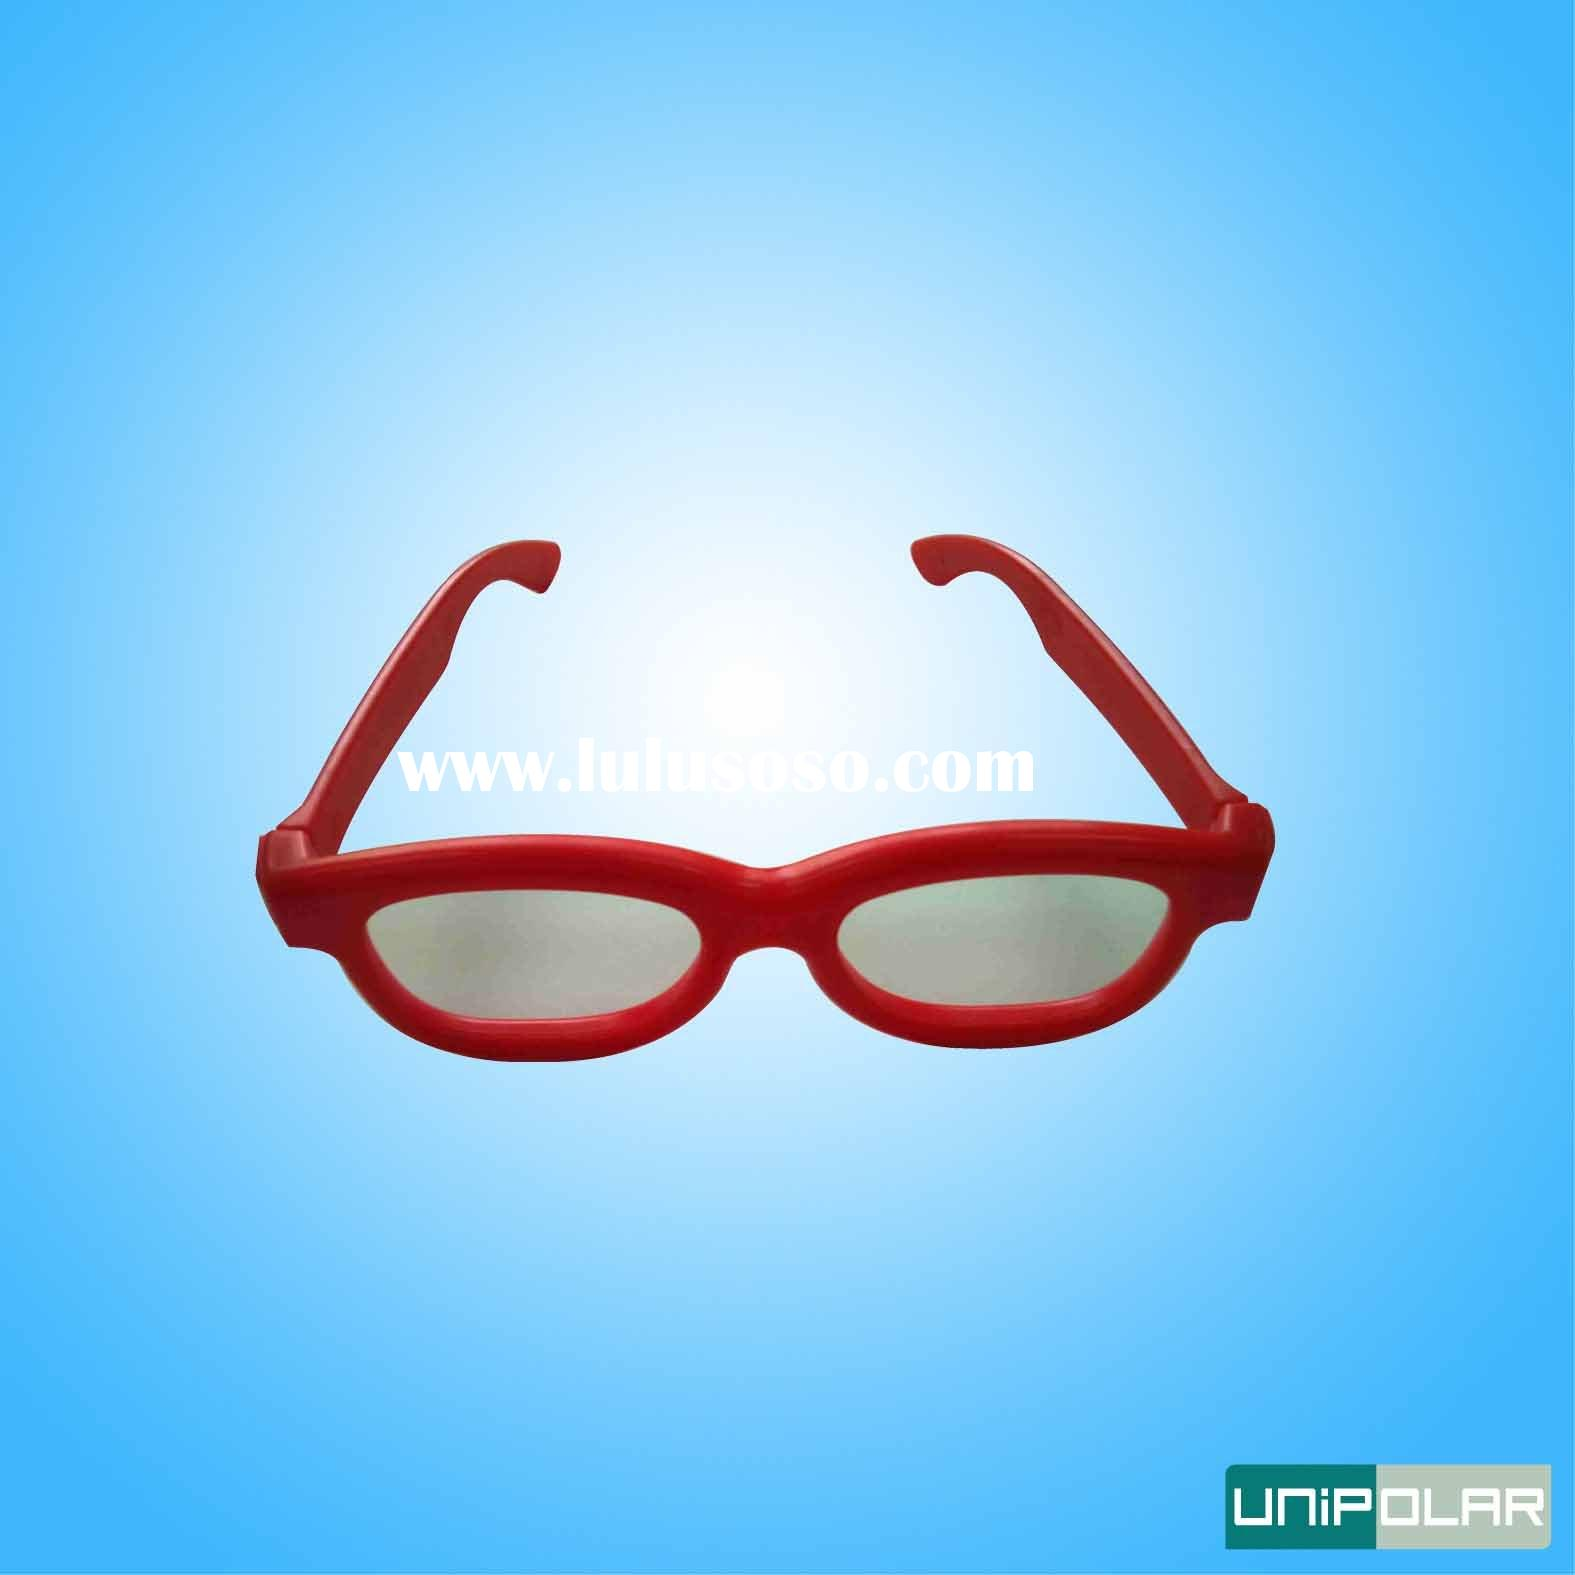 refraction-depth plastic 3d glasses for theatre